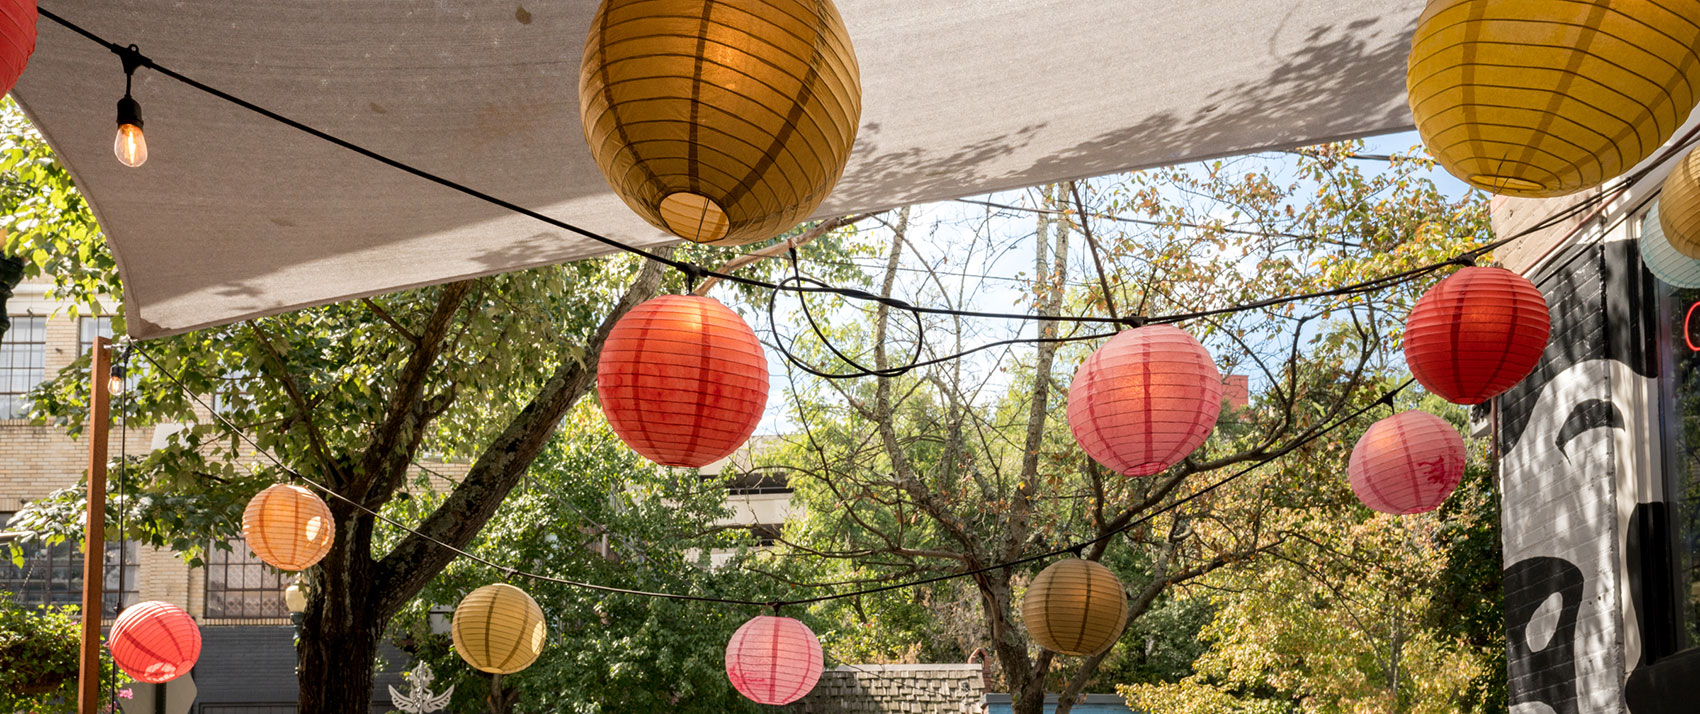 paper lanterns and trees